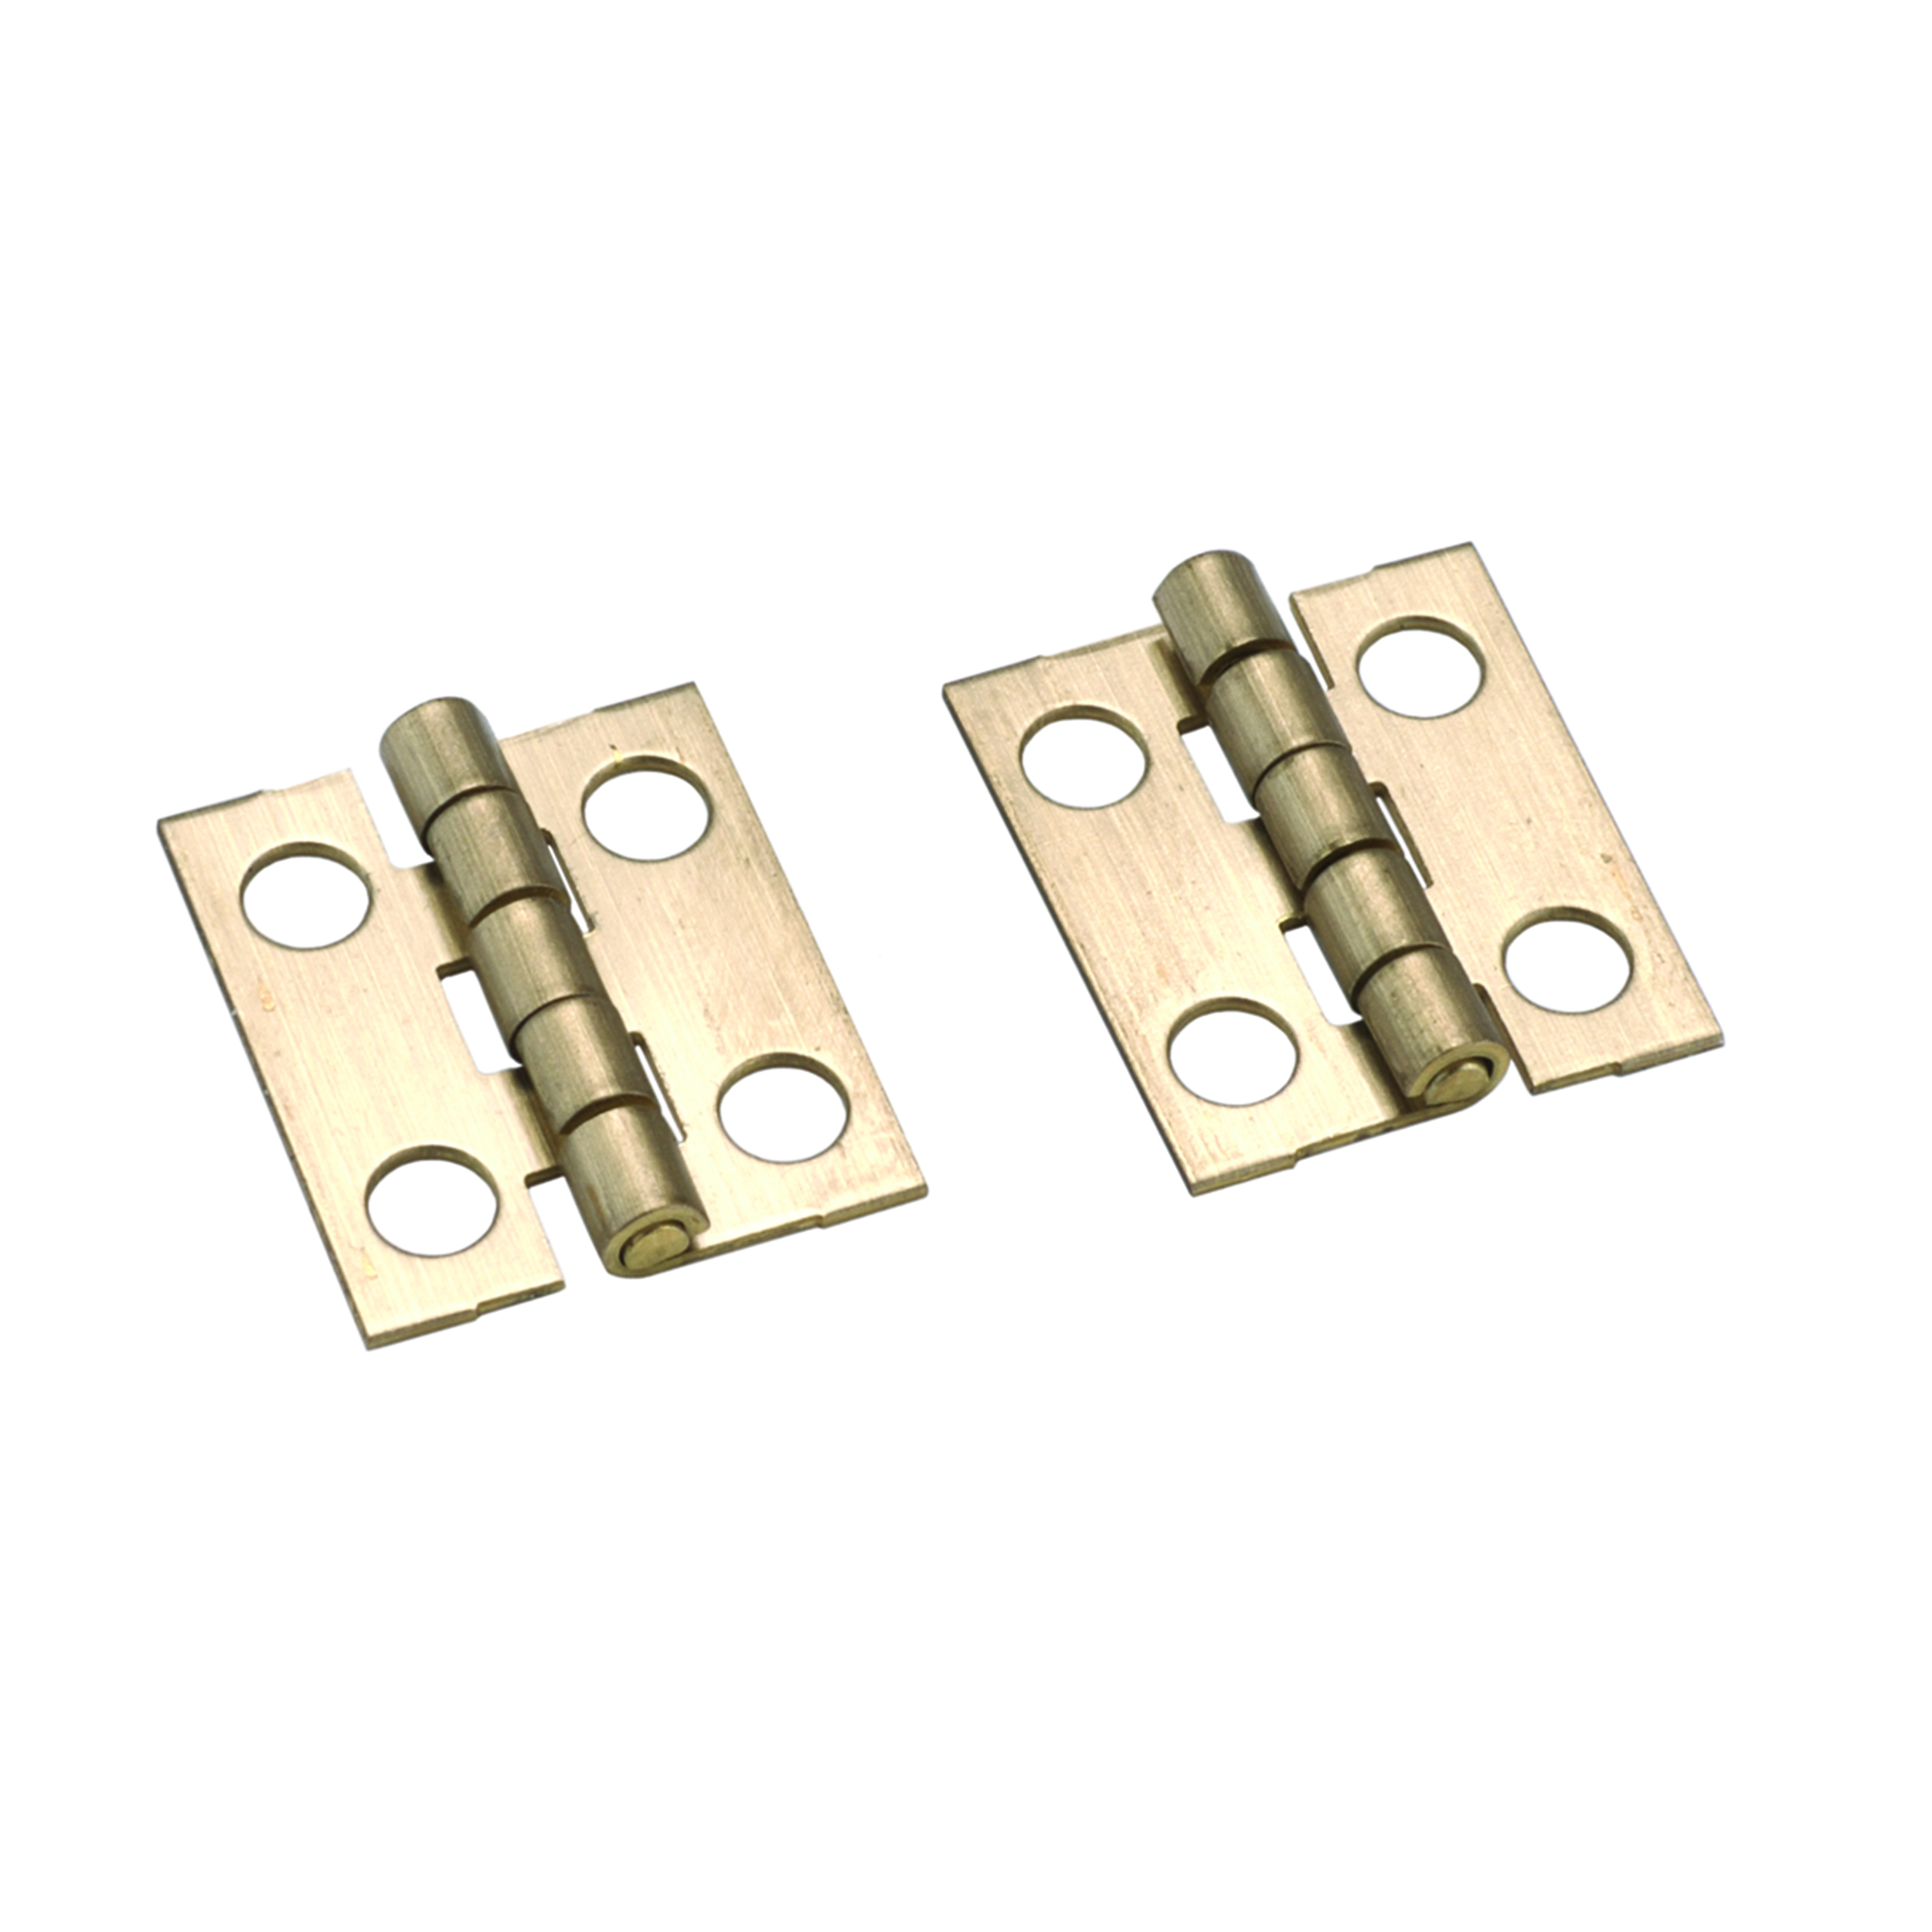 Stanley Solid Brass Ab Miniature Narrow Hinge 3/4